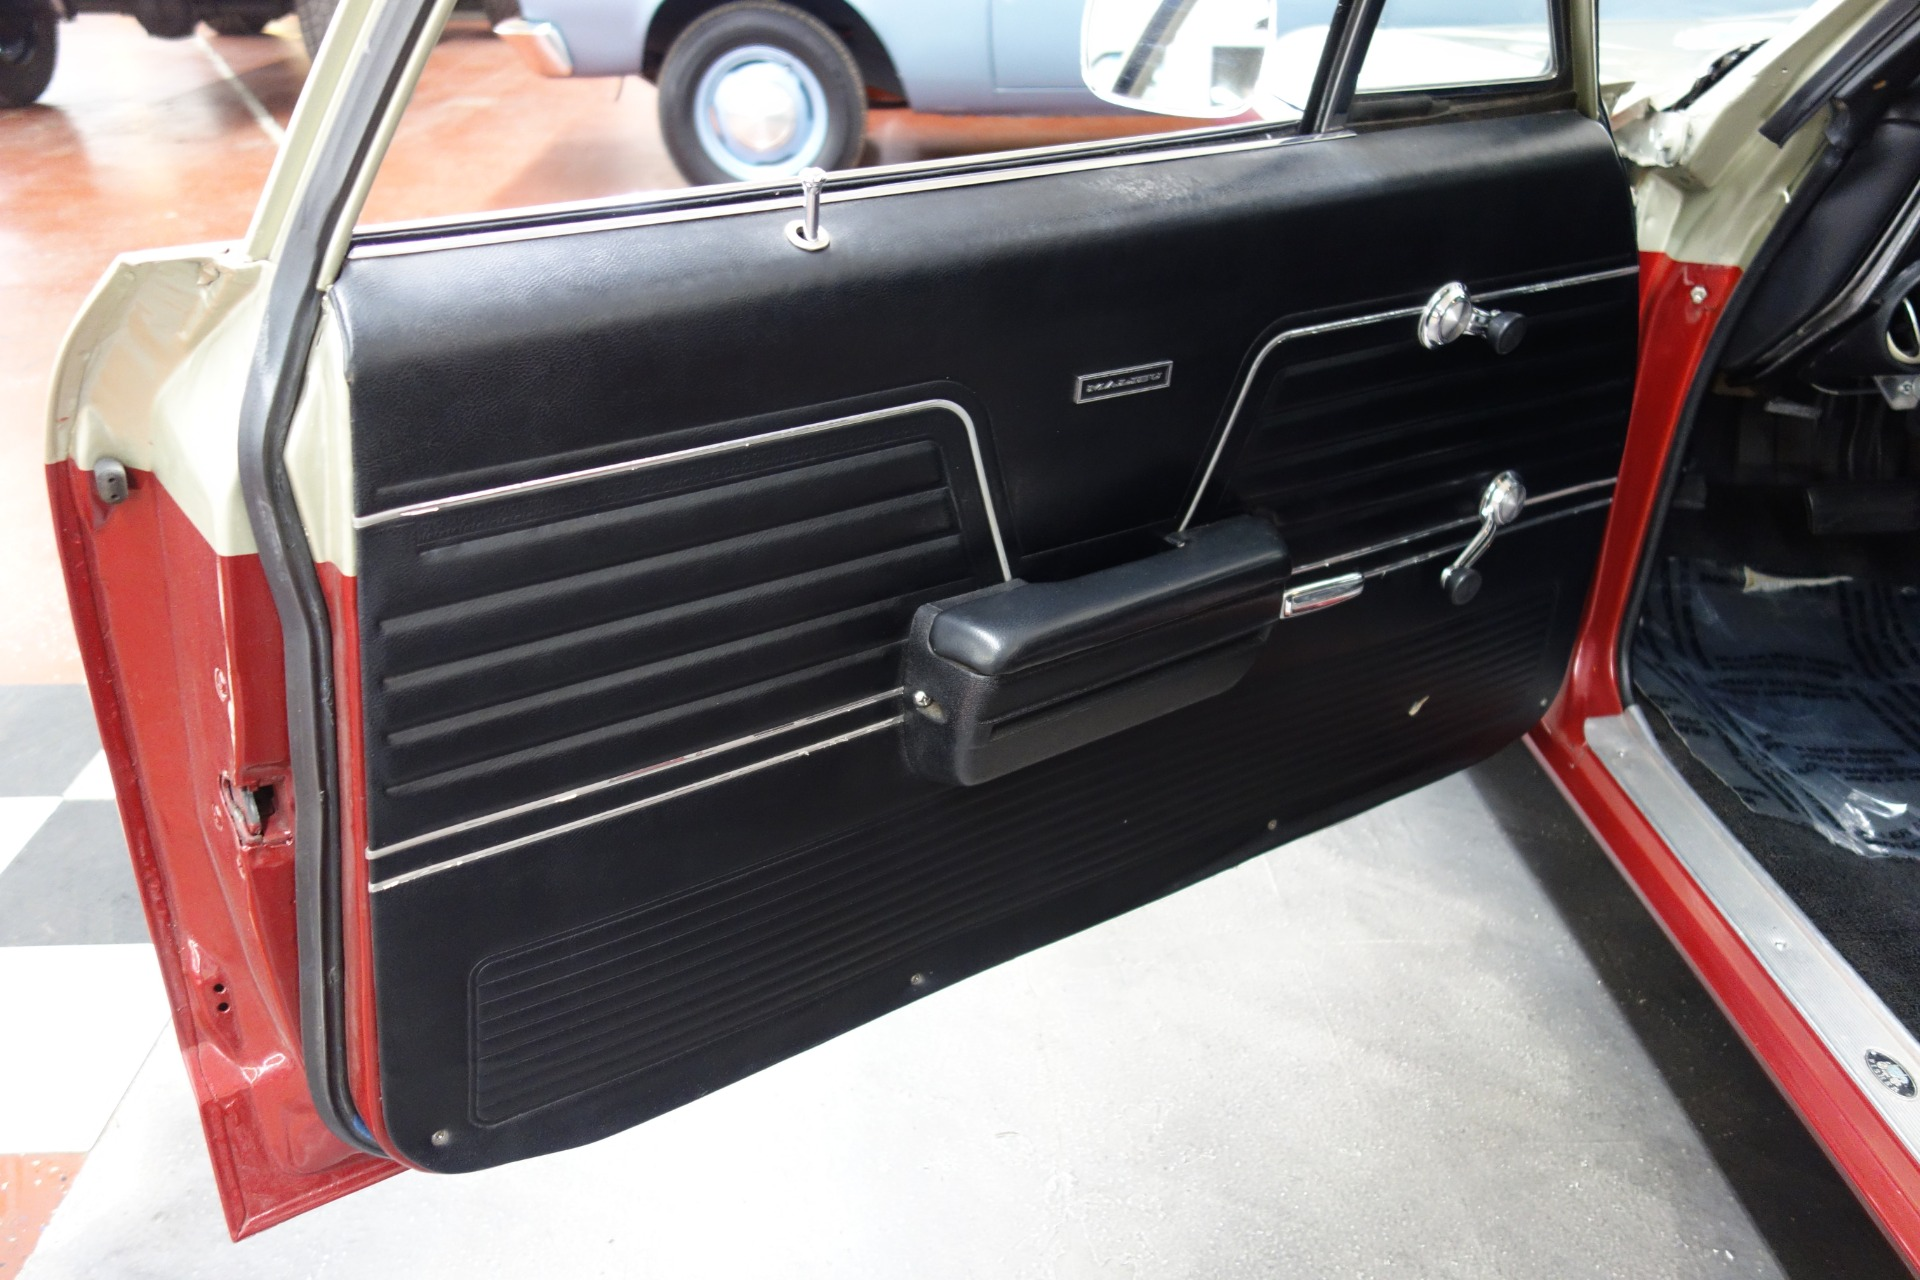 Used 1969 Chevrolet El Camino - MILD CUSTOM - TWO TONE PAINT - FACTORY A/C - | Mundelein, IL